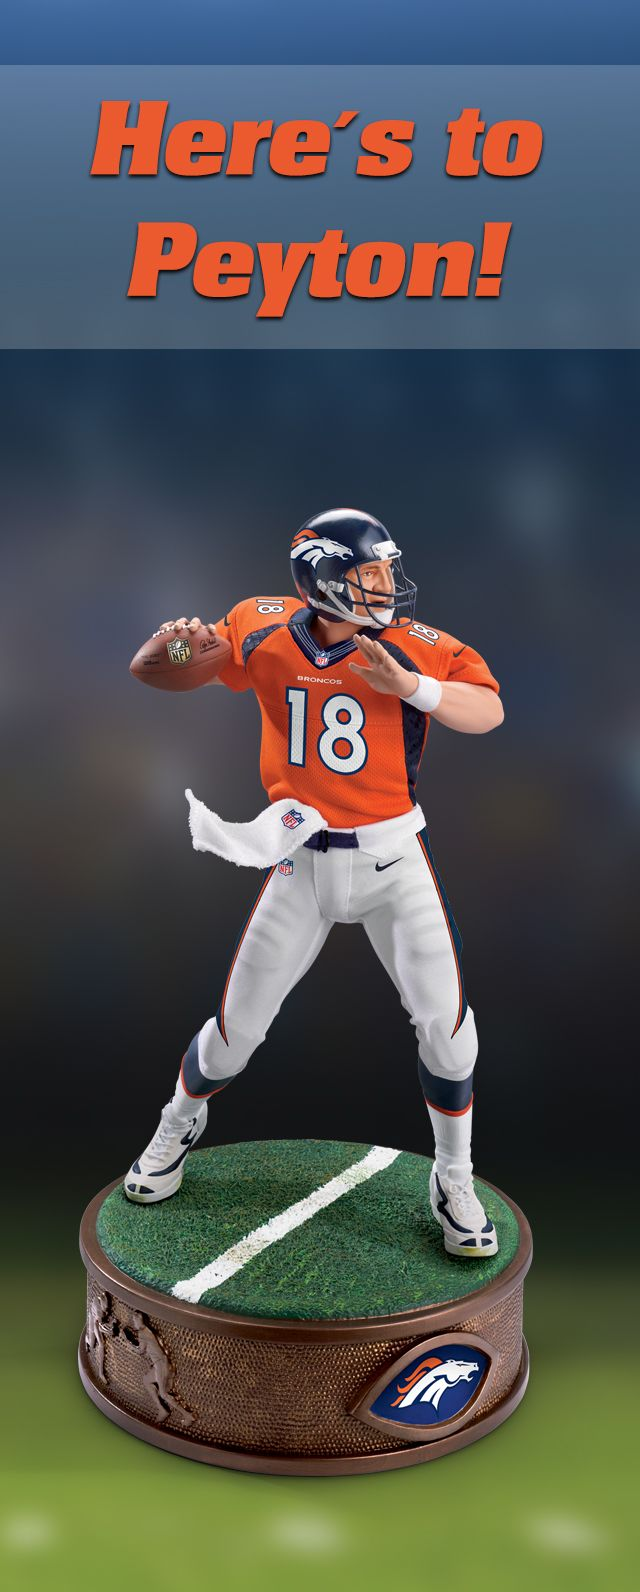 Here's to Peyton Manning's legendary career! Officially licensed by NFL Properties LLC and NFL PLAYERS, the Denver Broncos Peyton Manning sculpture honors the legend in winning style. It boasts an unbelievable likeness, flawlessly recreated #18 uniform, fully-sculpted bronze-finished base and more! Don't wait to score yours!